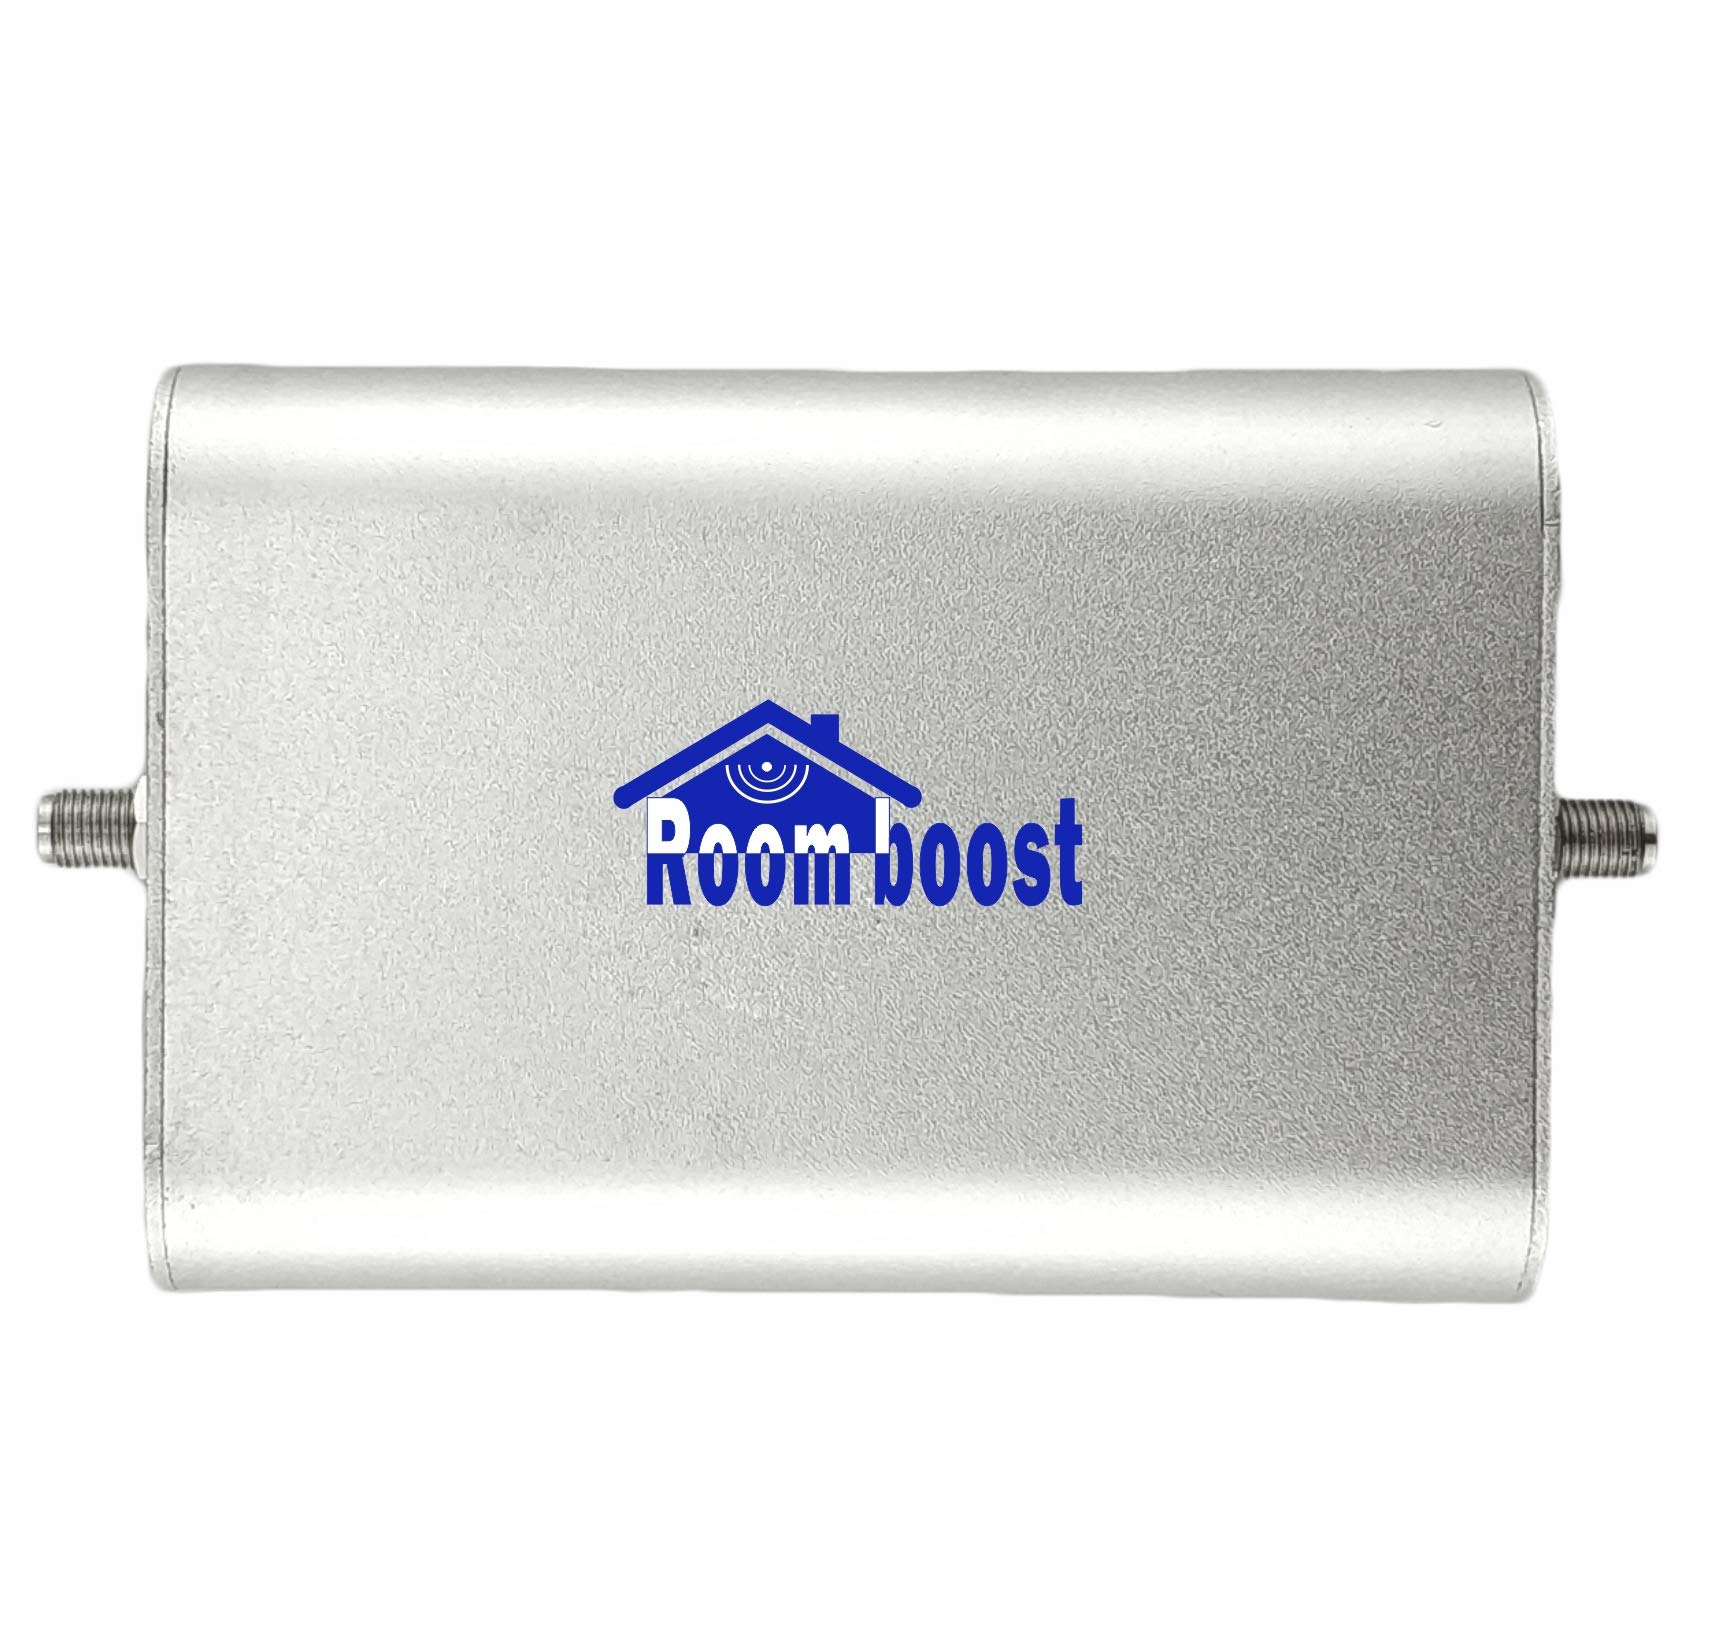 Roomboost 700MHz AT&T T-Mobile Cell Phone Signal Booster for Home and Office 4G LTE Band12/17 Host only.